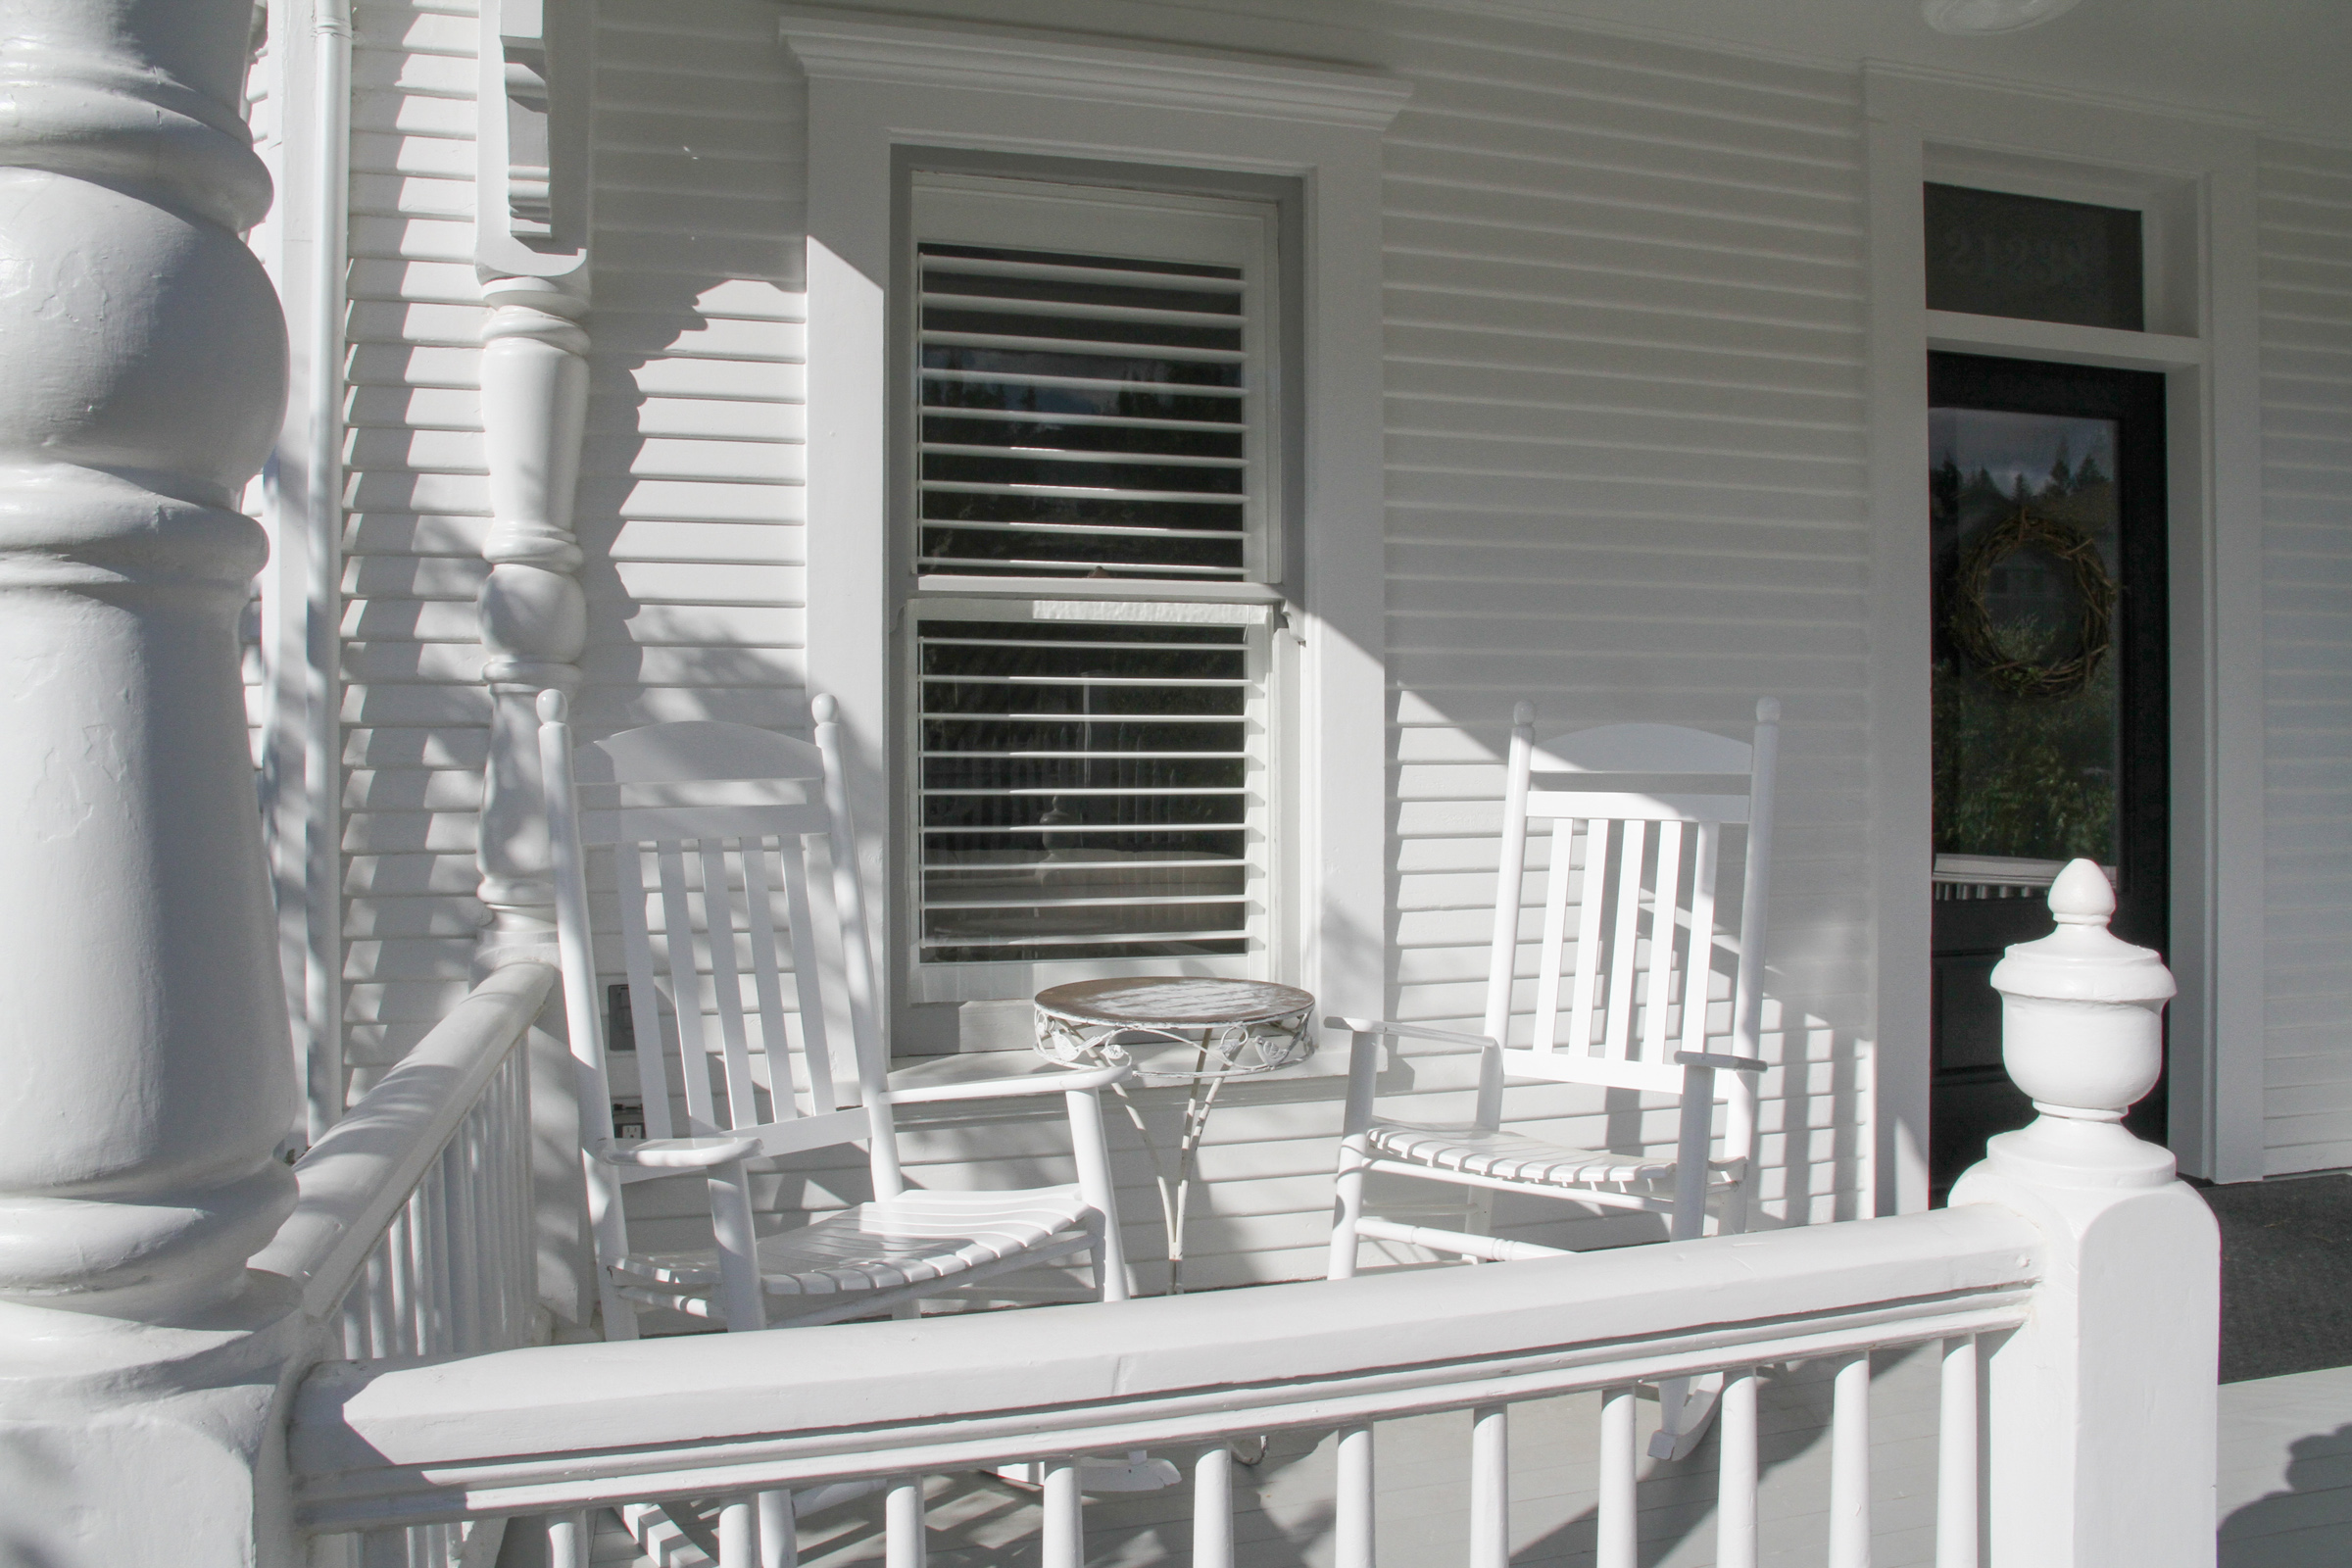 Spend a few quiet minutes on the porch in the morning watching this small town (population 862) come to life.